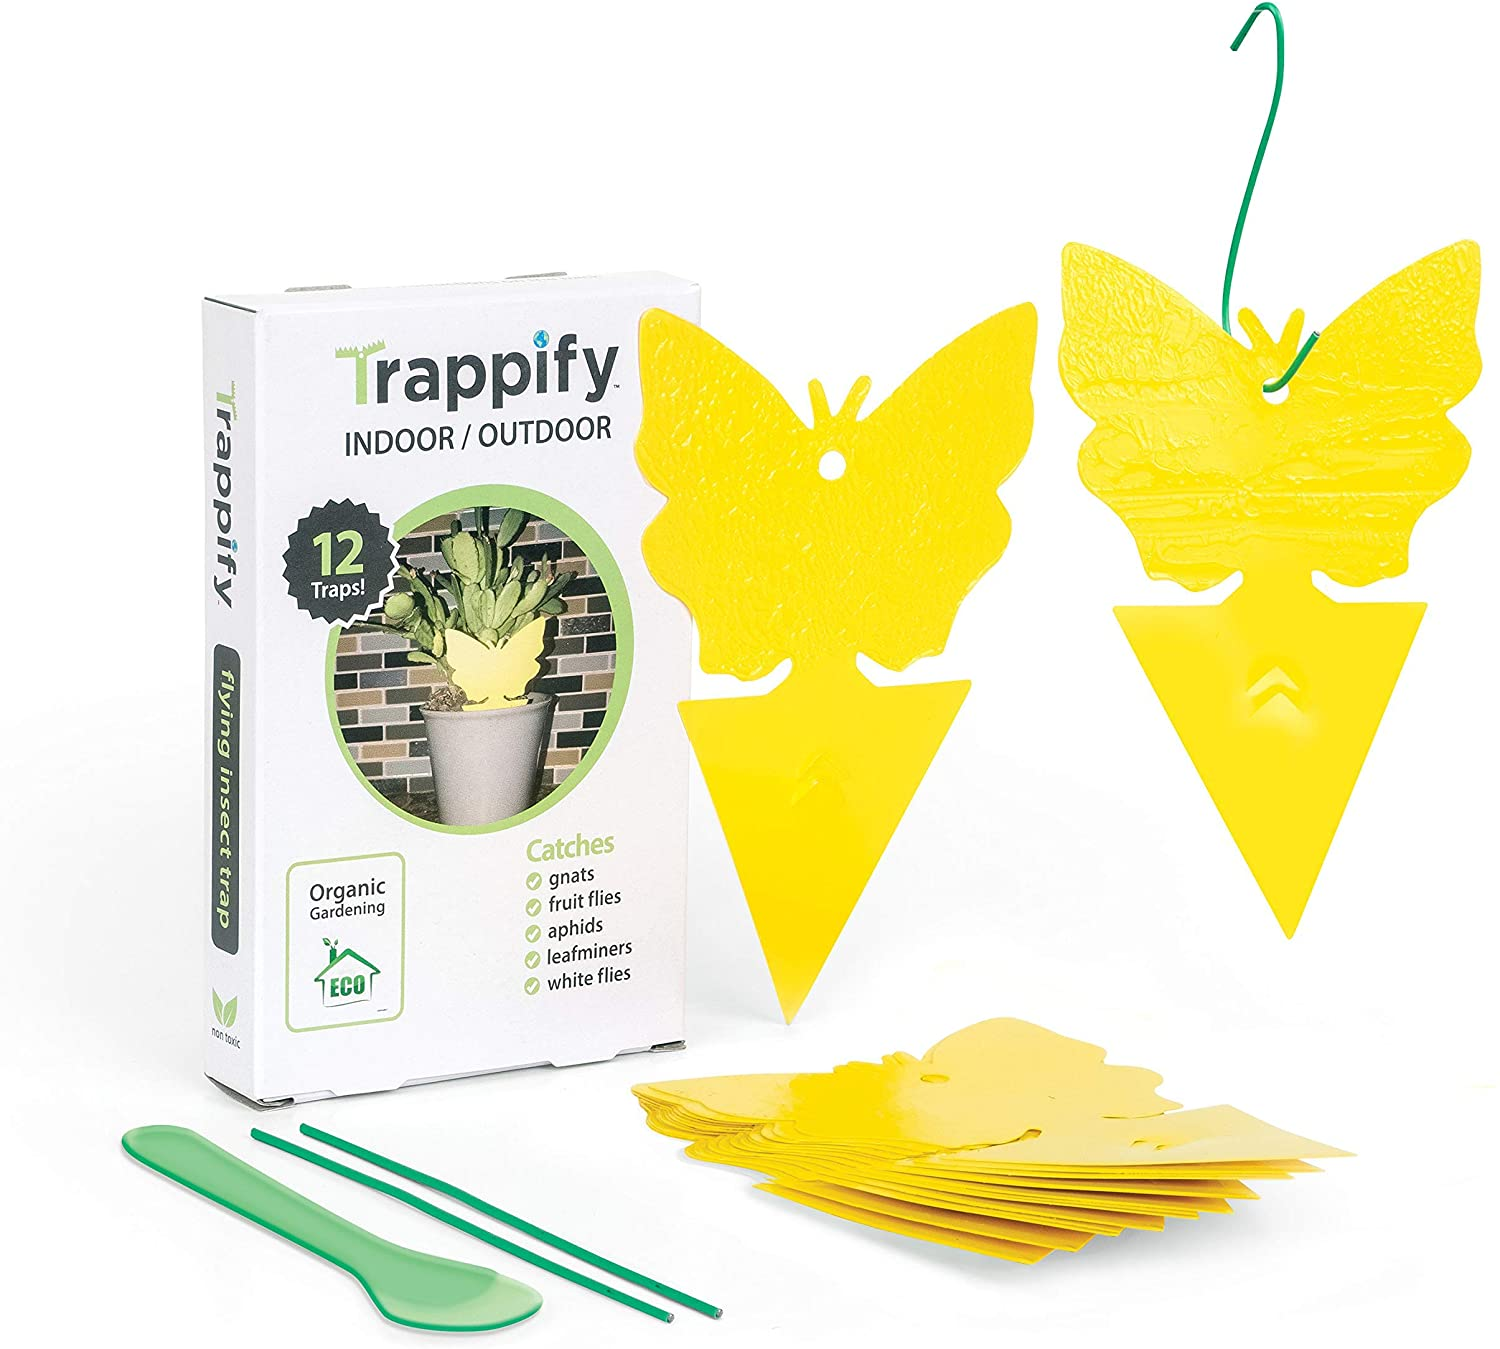 Trappify Sticky Fruit Fly and Gnat Trap Yellow Sticky Bug Traps for Indoor/Outdoor Use - Insect Catcher for White Flies, Mosquitos, Fungus Gnats, Flying Insects - Disposable Glue Trappers (12)